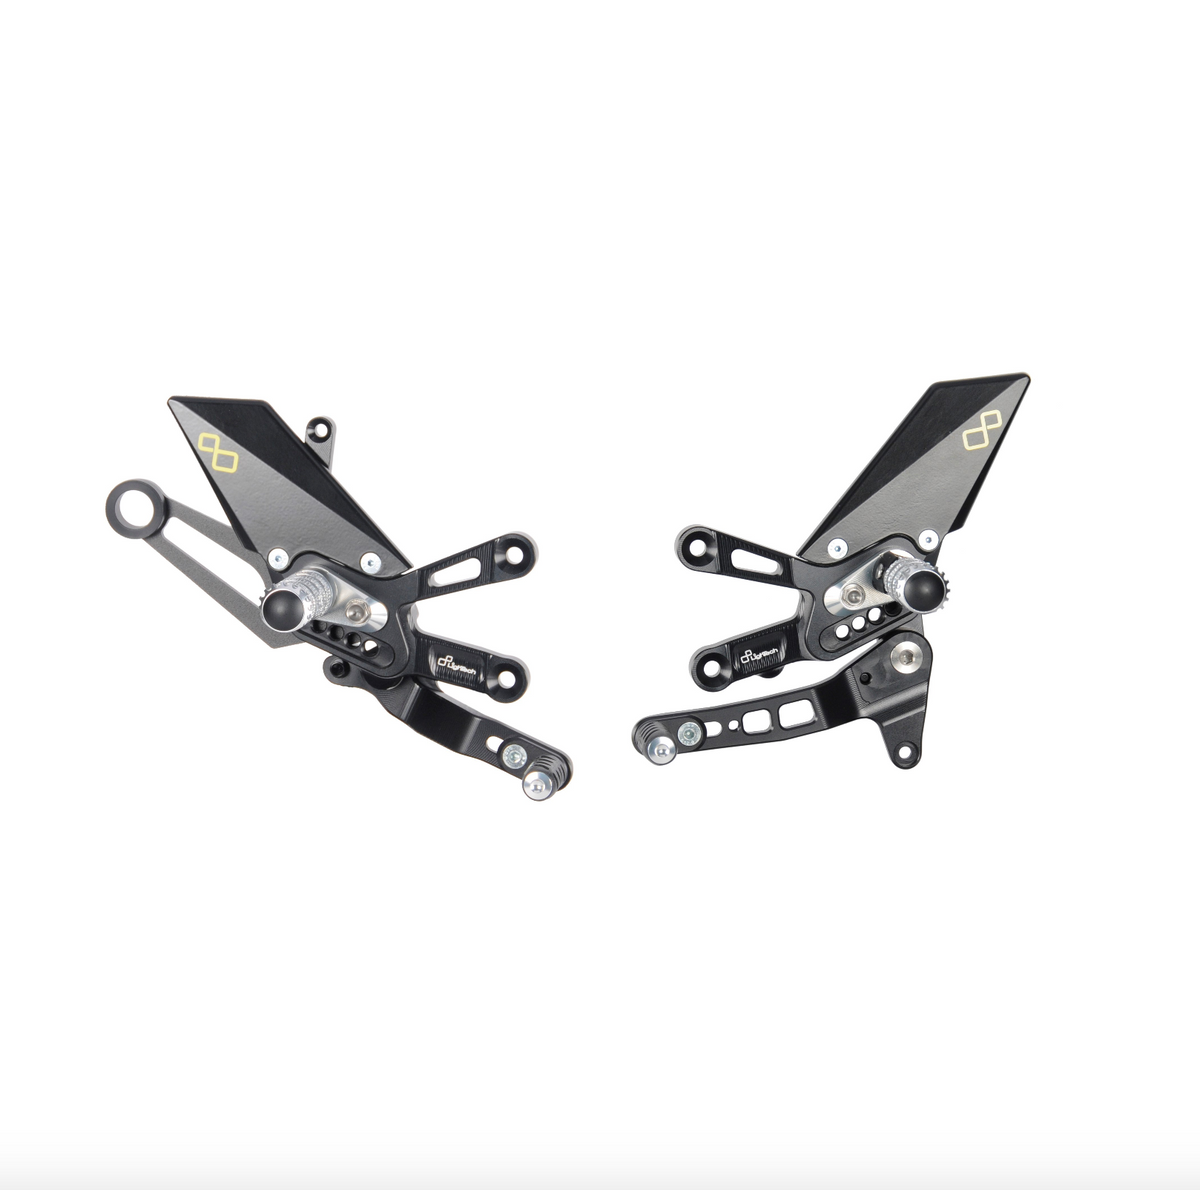 Aprilia - Adjustable Rearsets - Averys Motorcycles